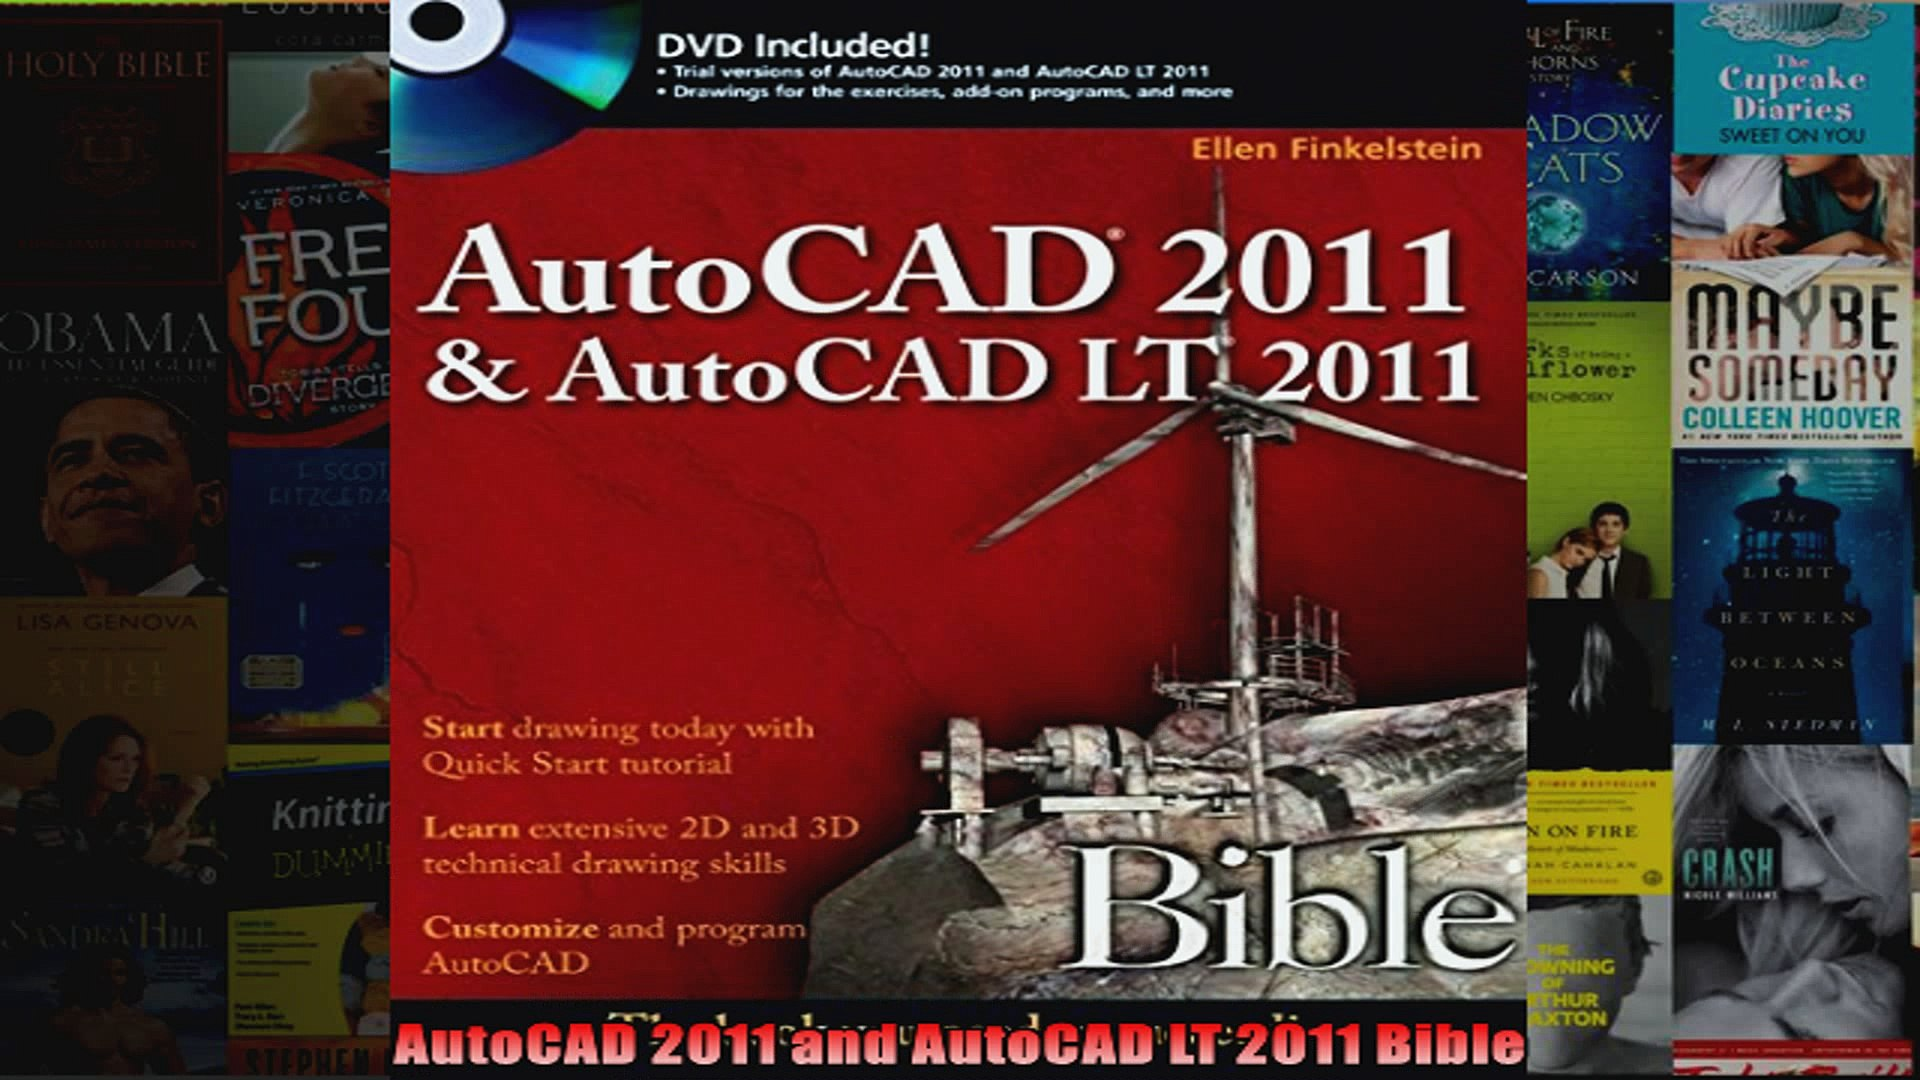 Read  AutoCAD 2011 and AutoCAD LT 2011 Bible  Full EBook